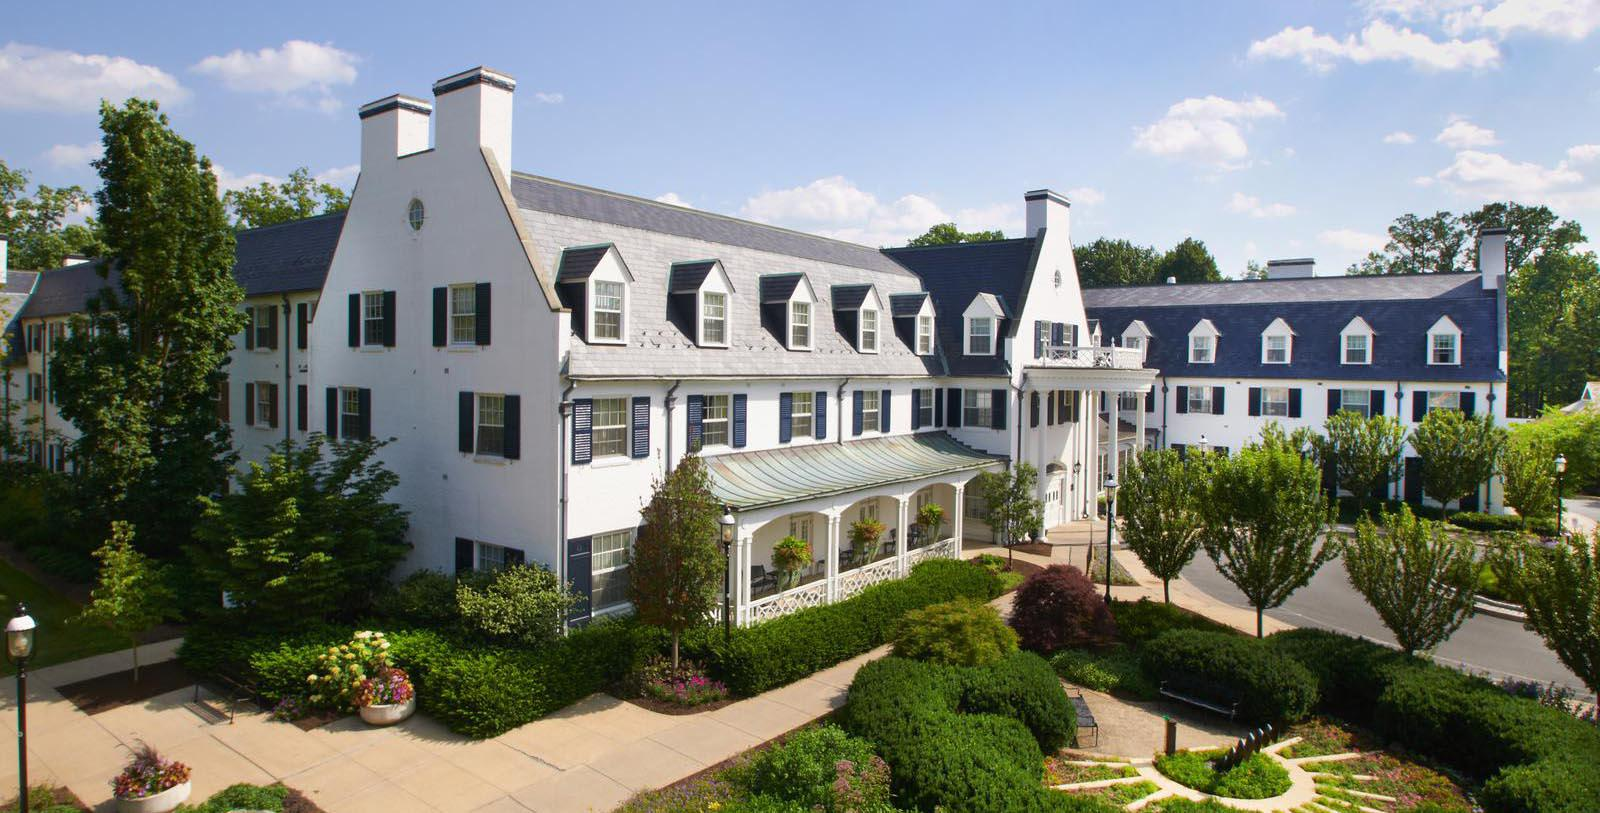 Image of Hotel Exterior The Nittany Lion Inn of the Pennsylvania State University, 1931, Member of Historic Hotels of America, in State College, Pennsylvania, Overview